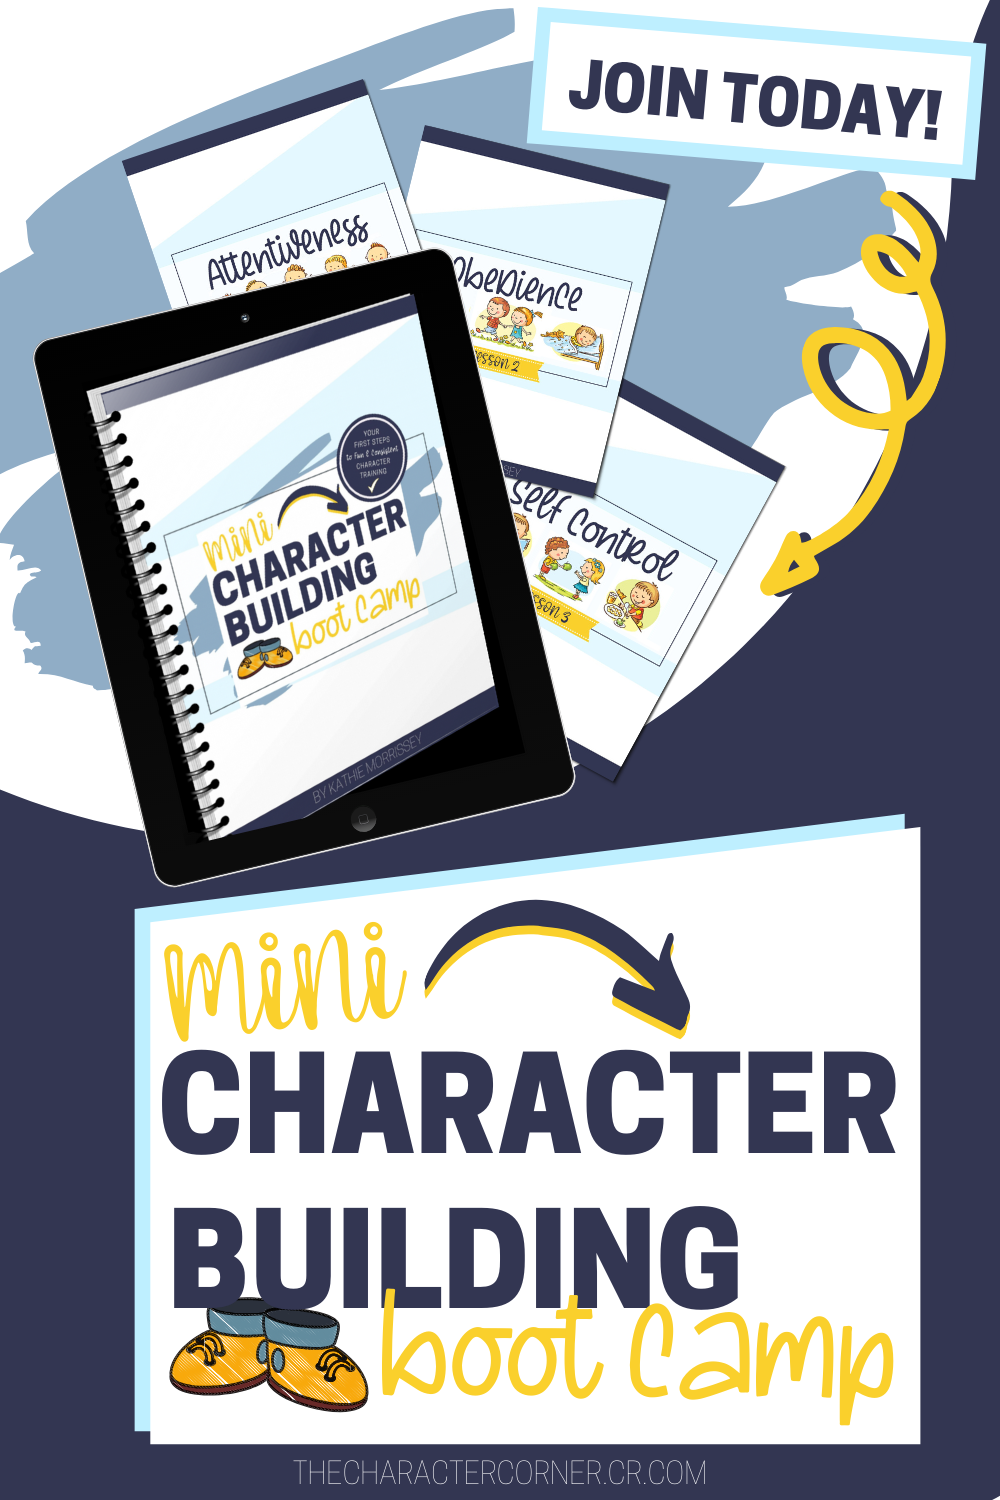 Join the Mini Character Boot Camp!